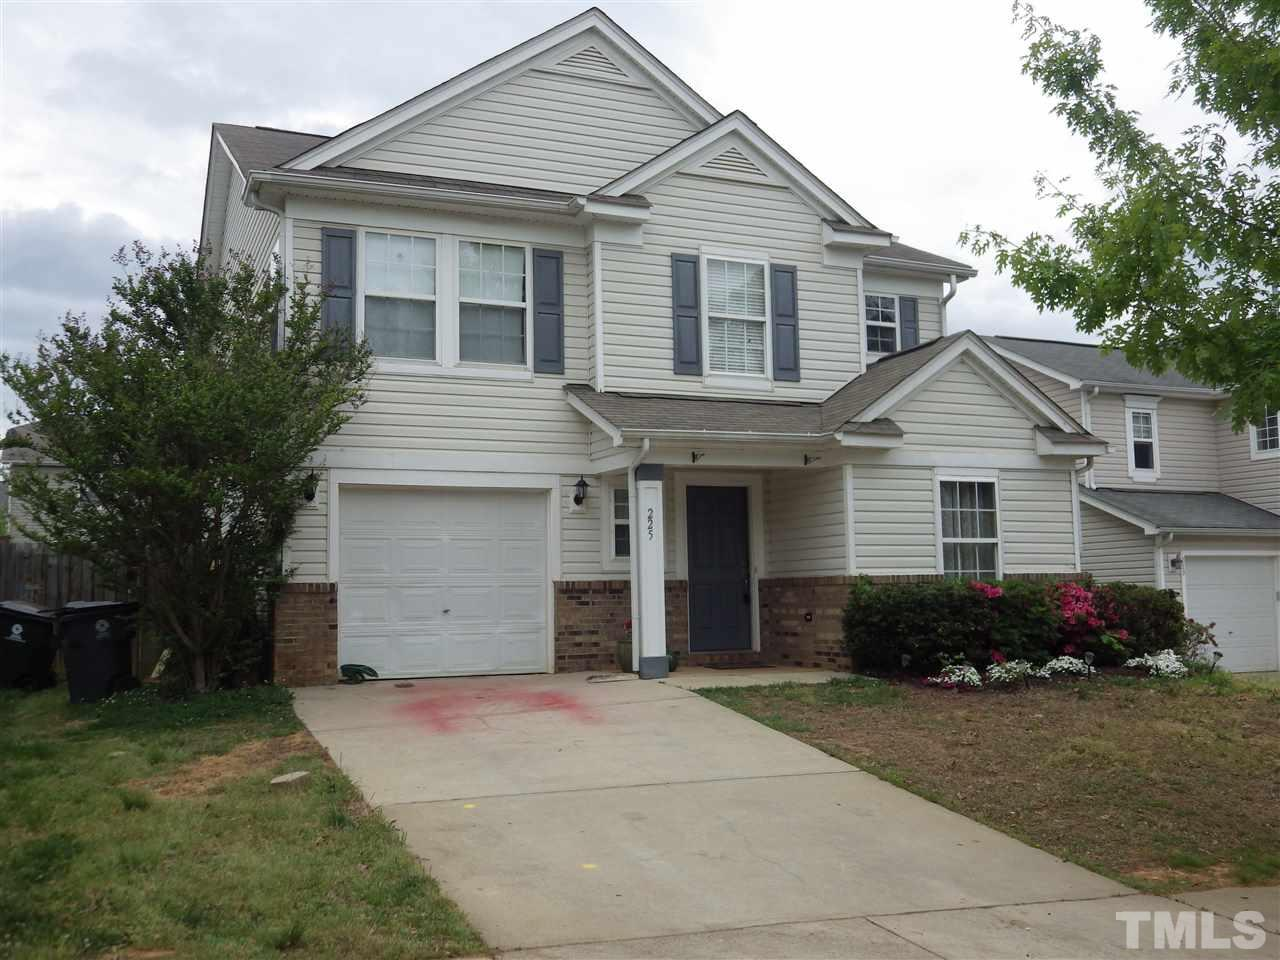 225 Milpass Drive, Holly Springs, NC 27540